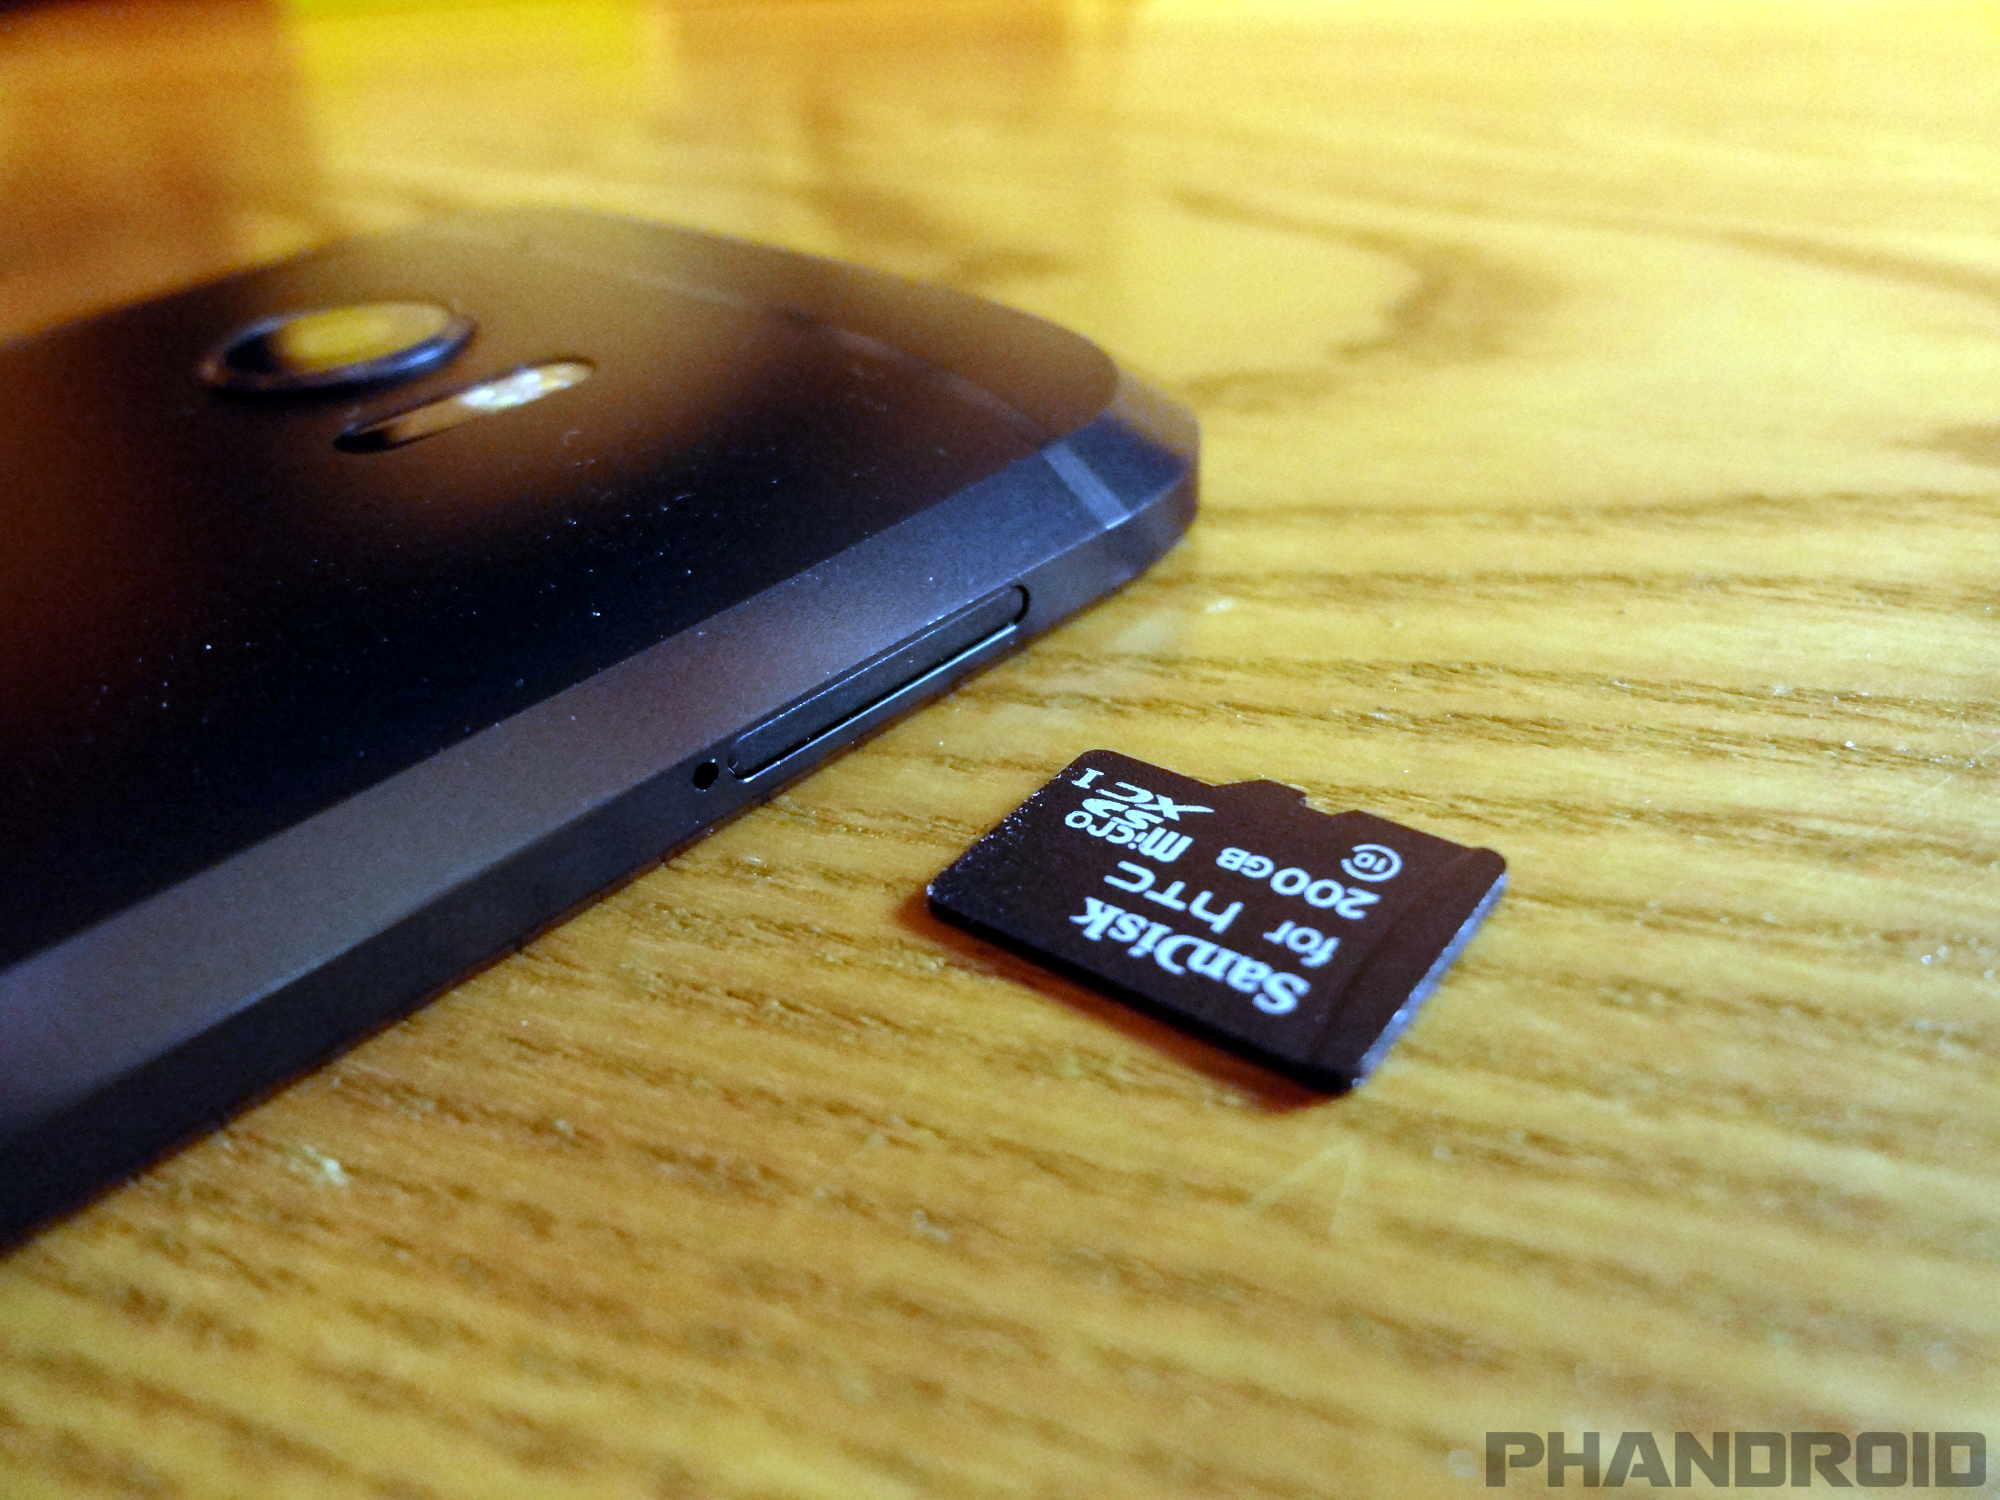 how to make photos and videos go to sd card